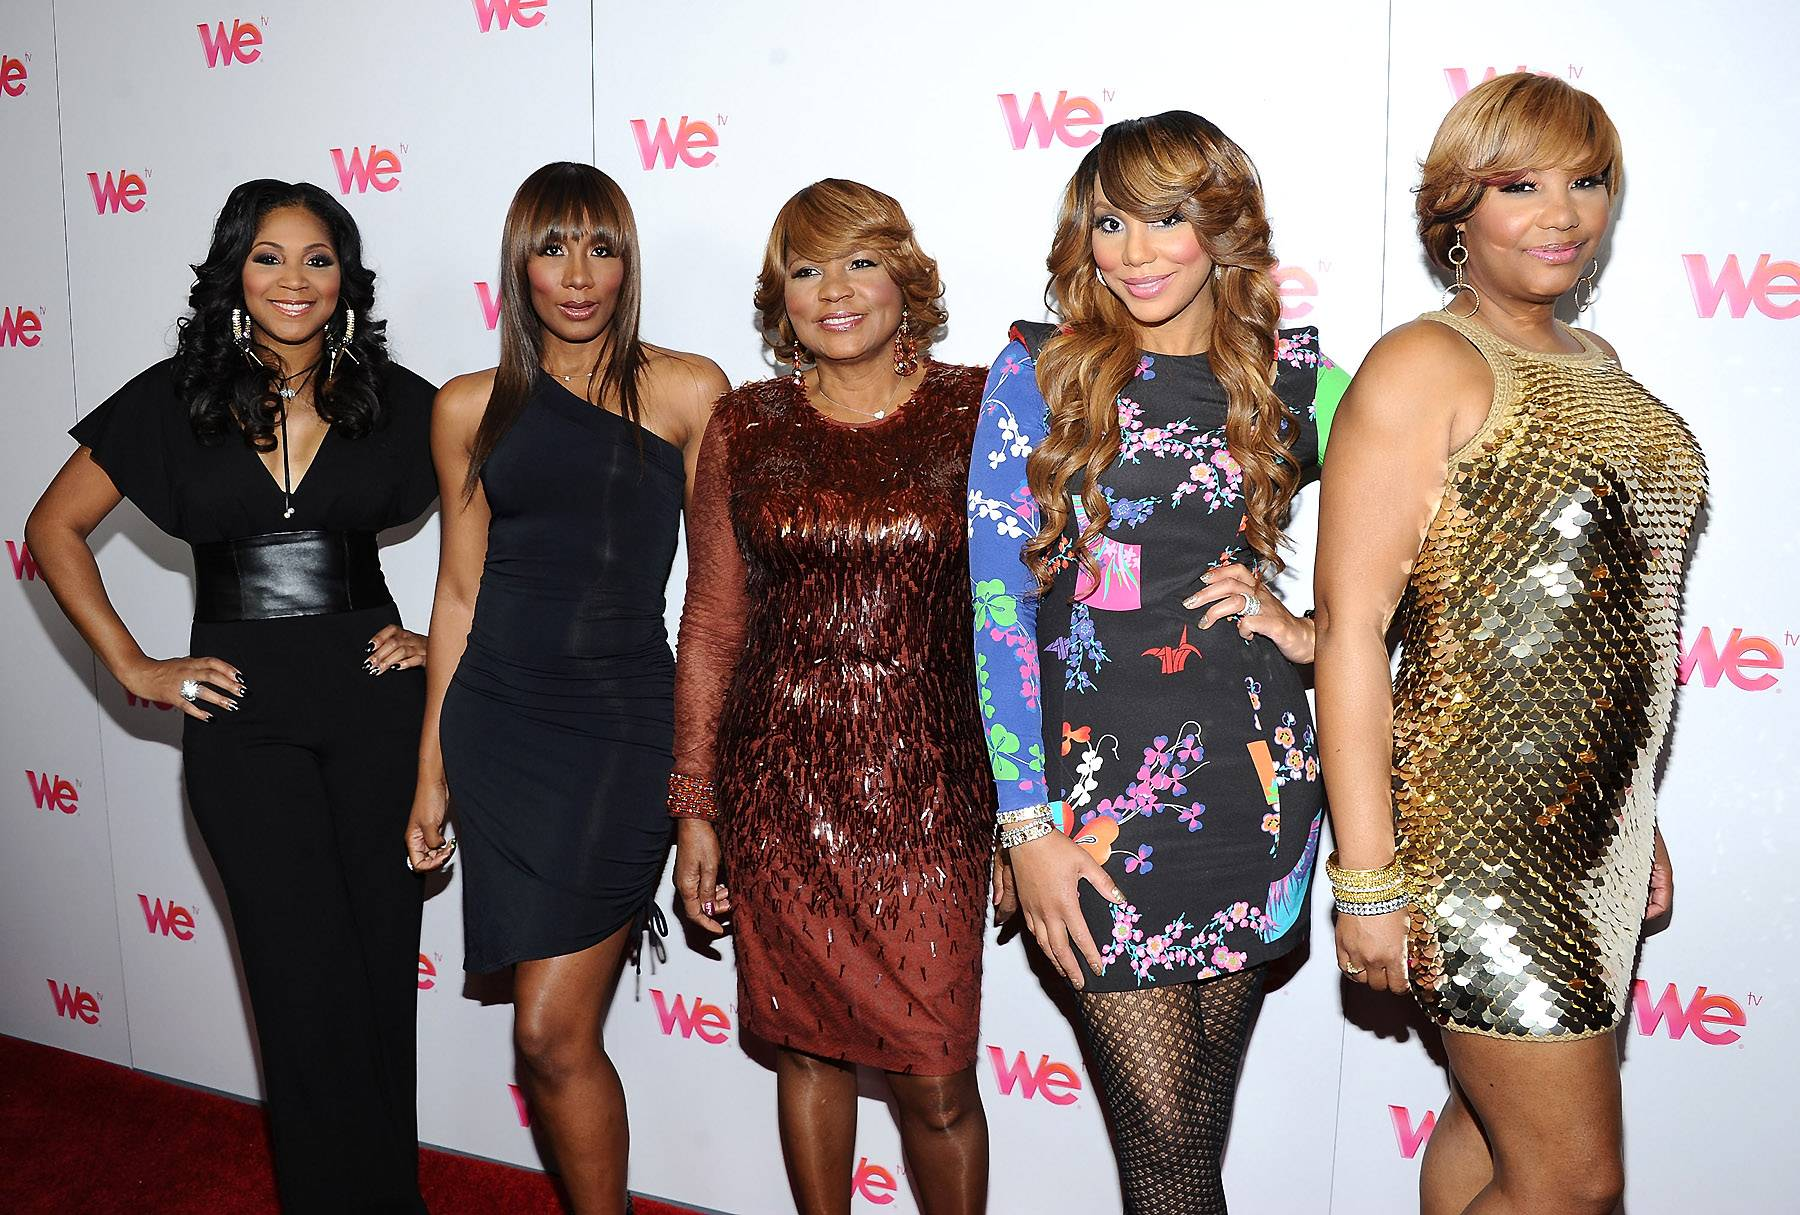 The Braxton Sisters  - They are more than just five beautiful ladies, they are also uber talented. All five TV personalities,Trina Braxton, Towanda Braxton, Toni Braxton, Tamar Braxton and Traci Braxton, can really sing! They're like a female version of the Jackson clan. (Photo: Angela Weiss/Getty Images)